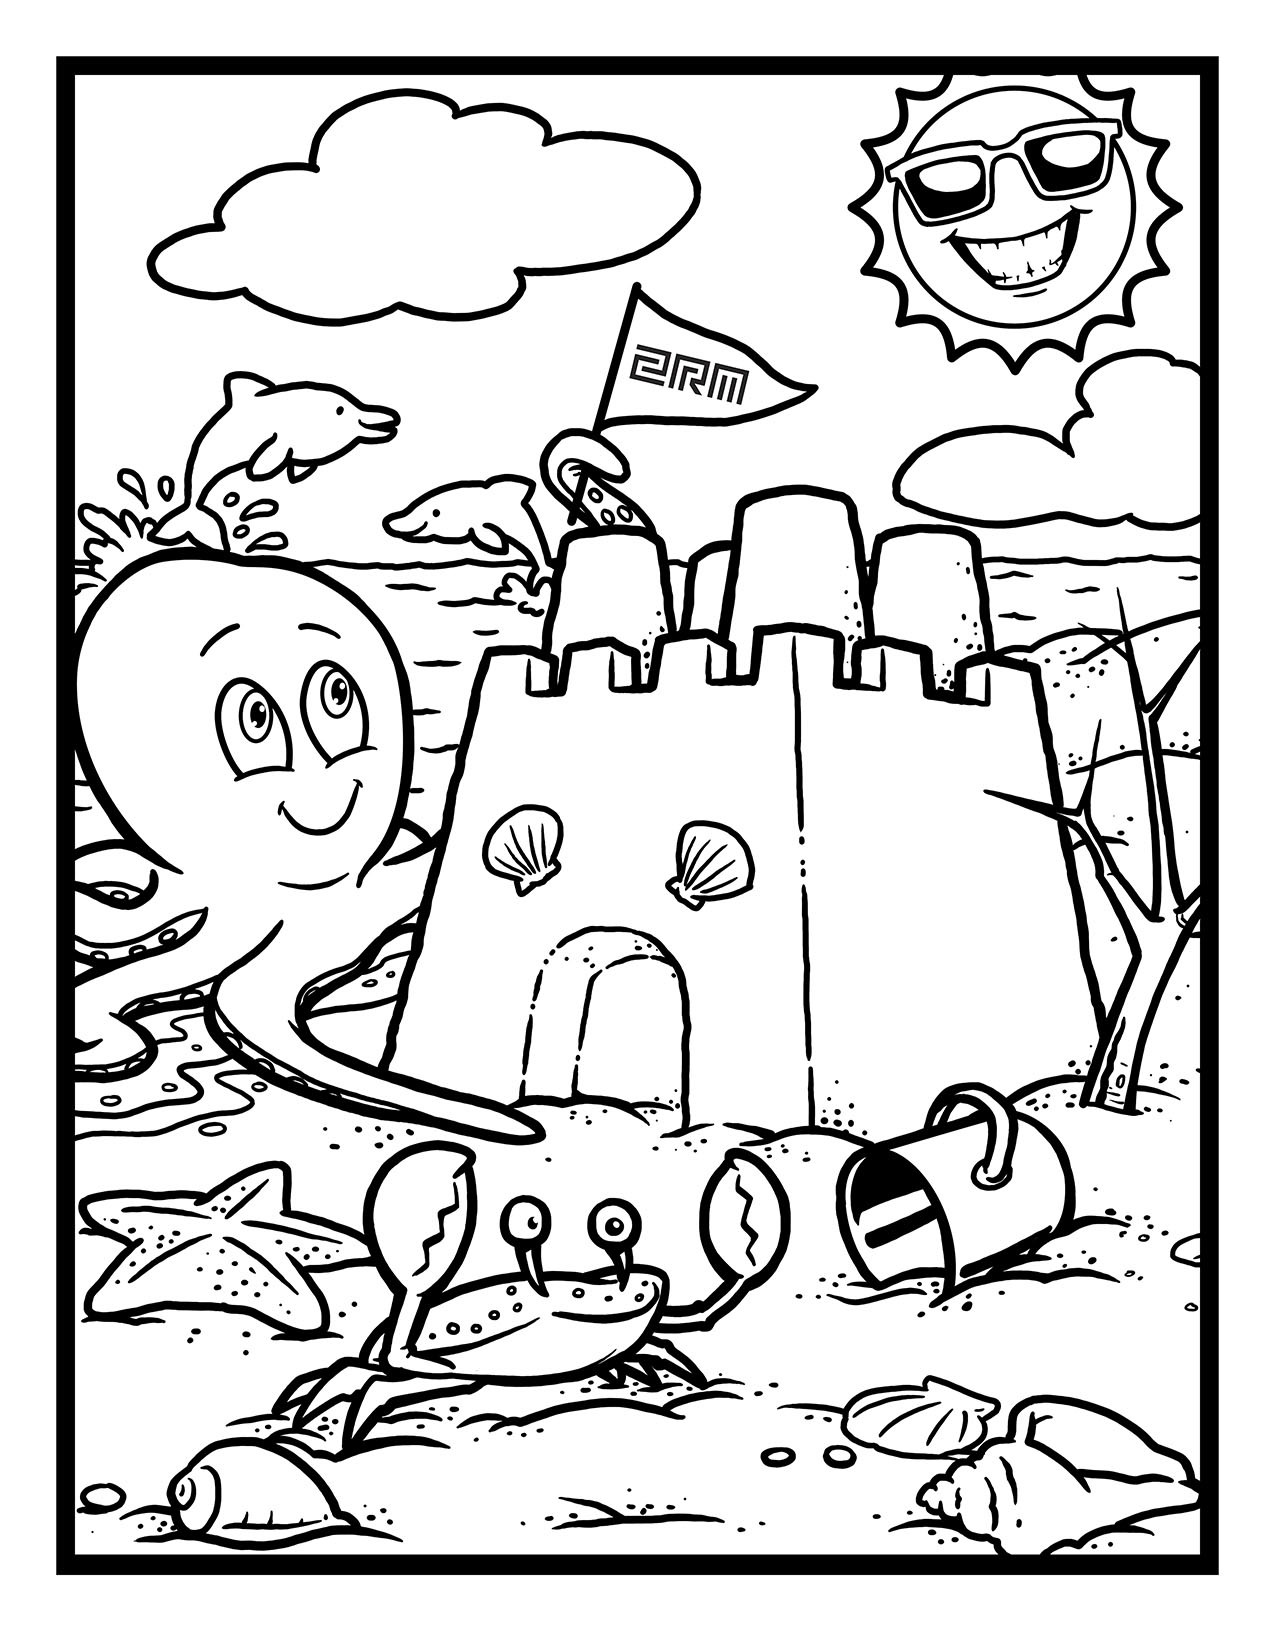 Two Rivers Marketing Sand Castle Coloring Page